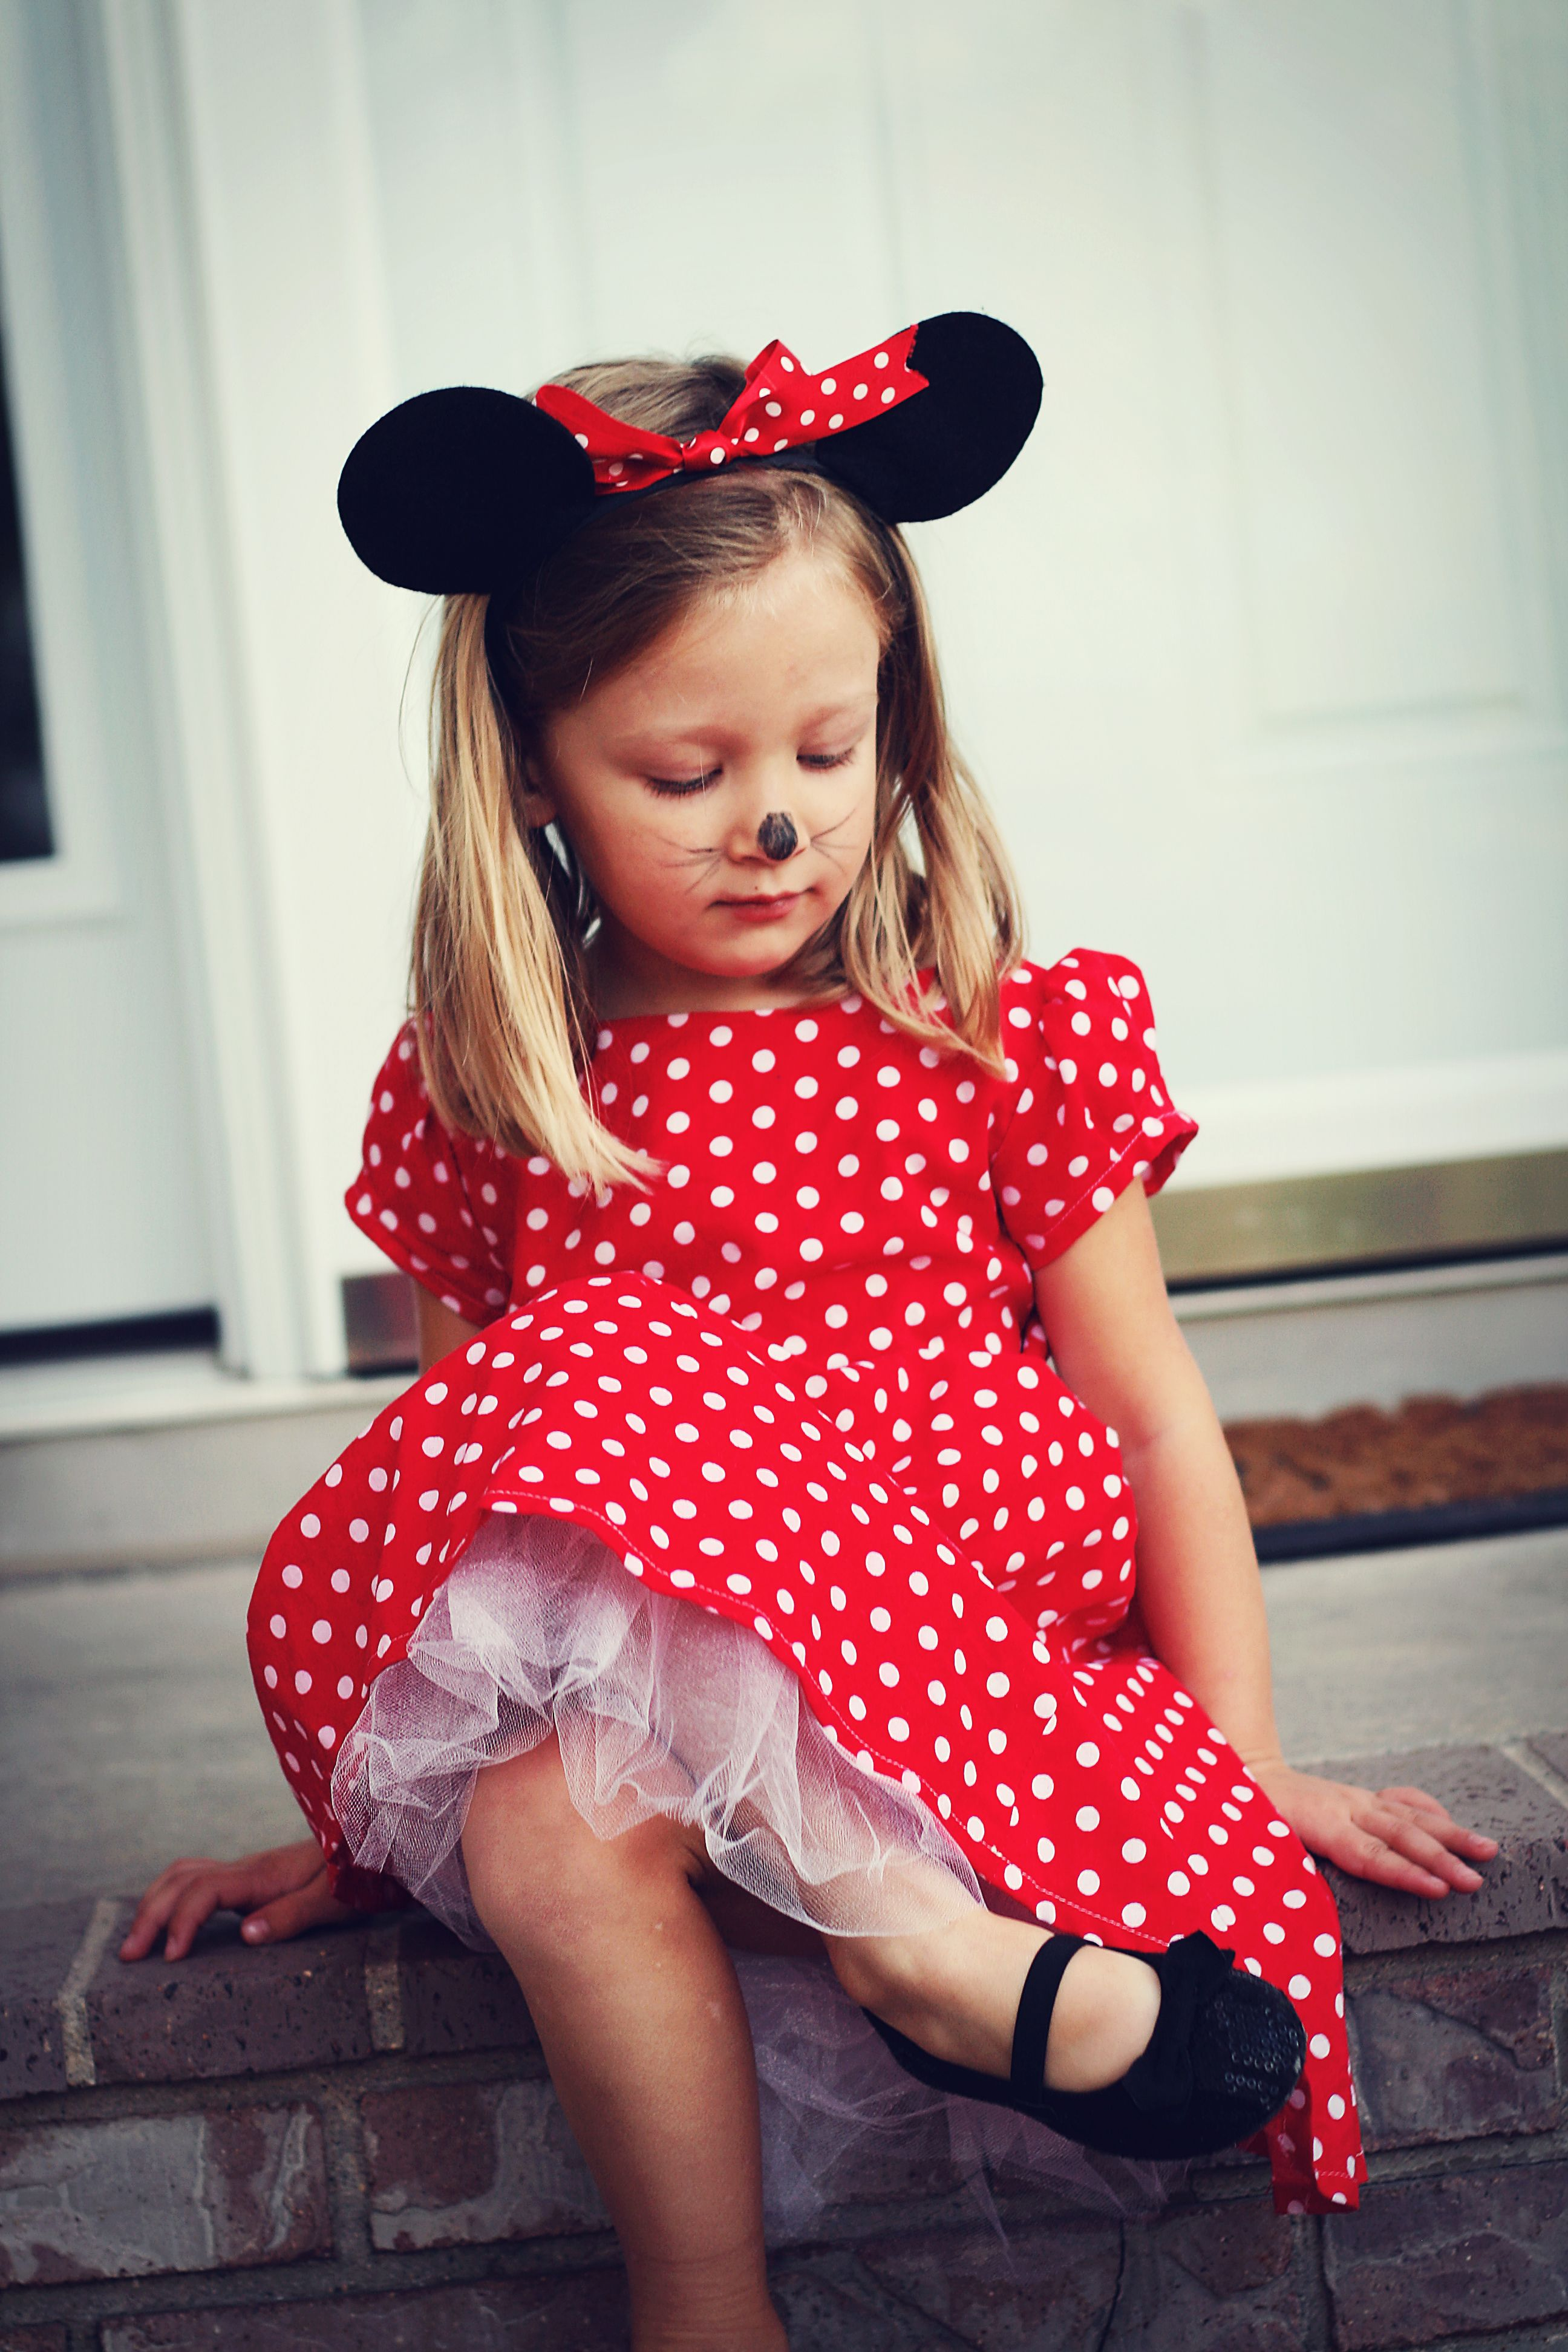 Childrenu0027s/Kidsu0027 Minnie Mouse Halloween Costume - Kacy you and Lily could go  sc 1 st  Pinterest & Childrenu0027s/Kidsu0027 Minnie Mouse Halloween Costume - Kacy you and Lily ...